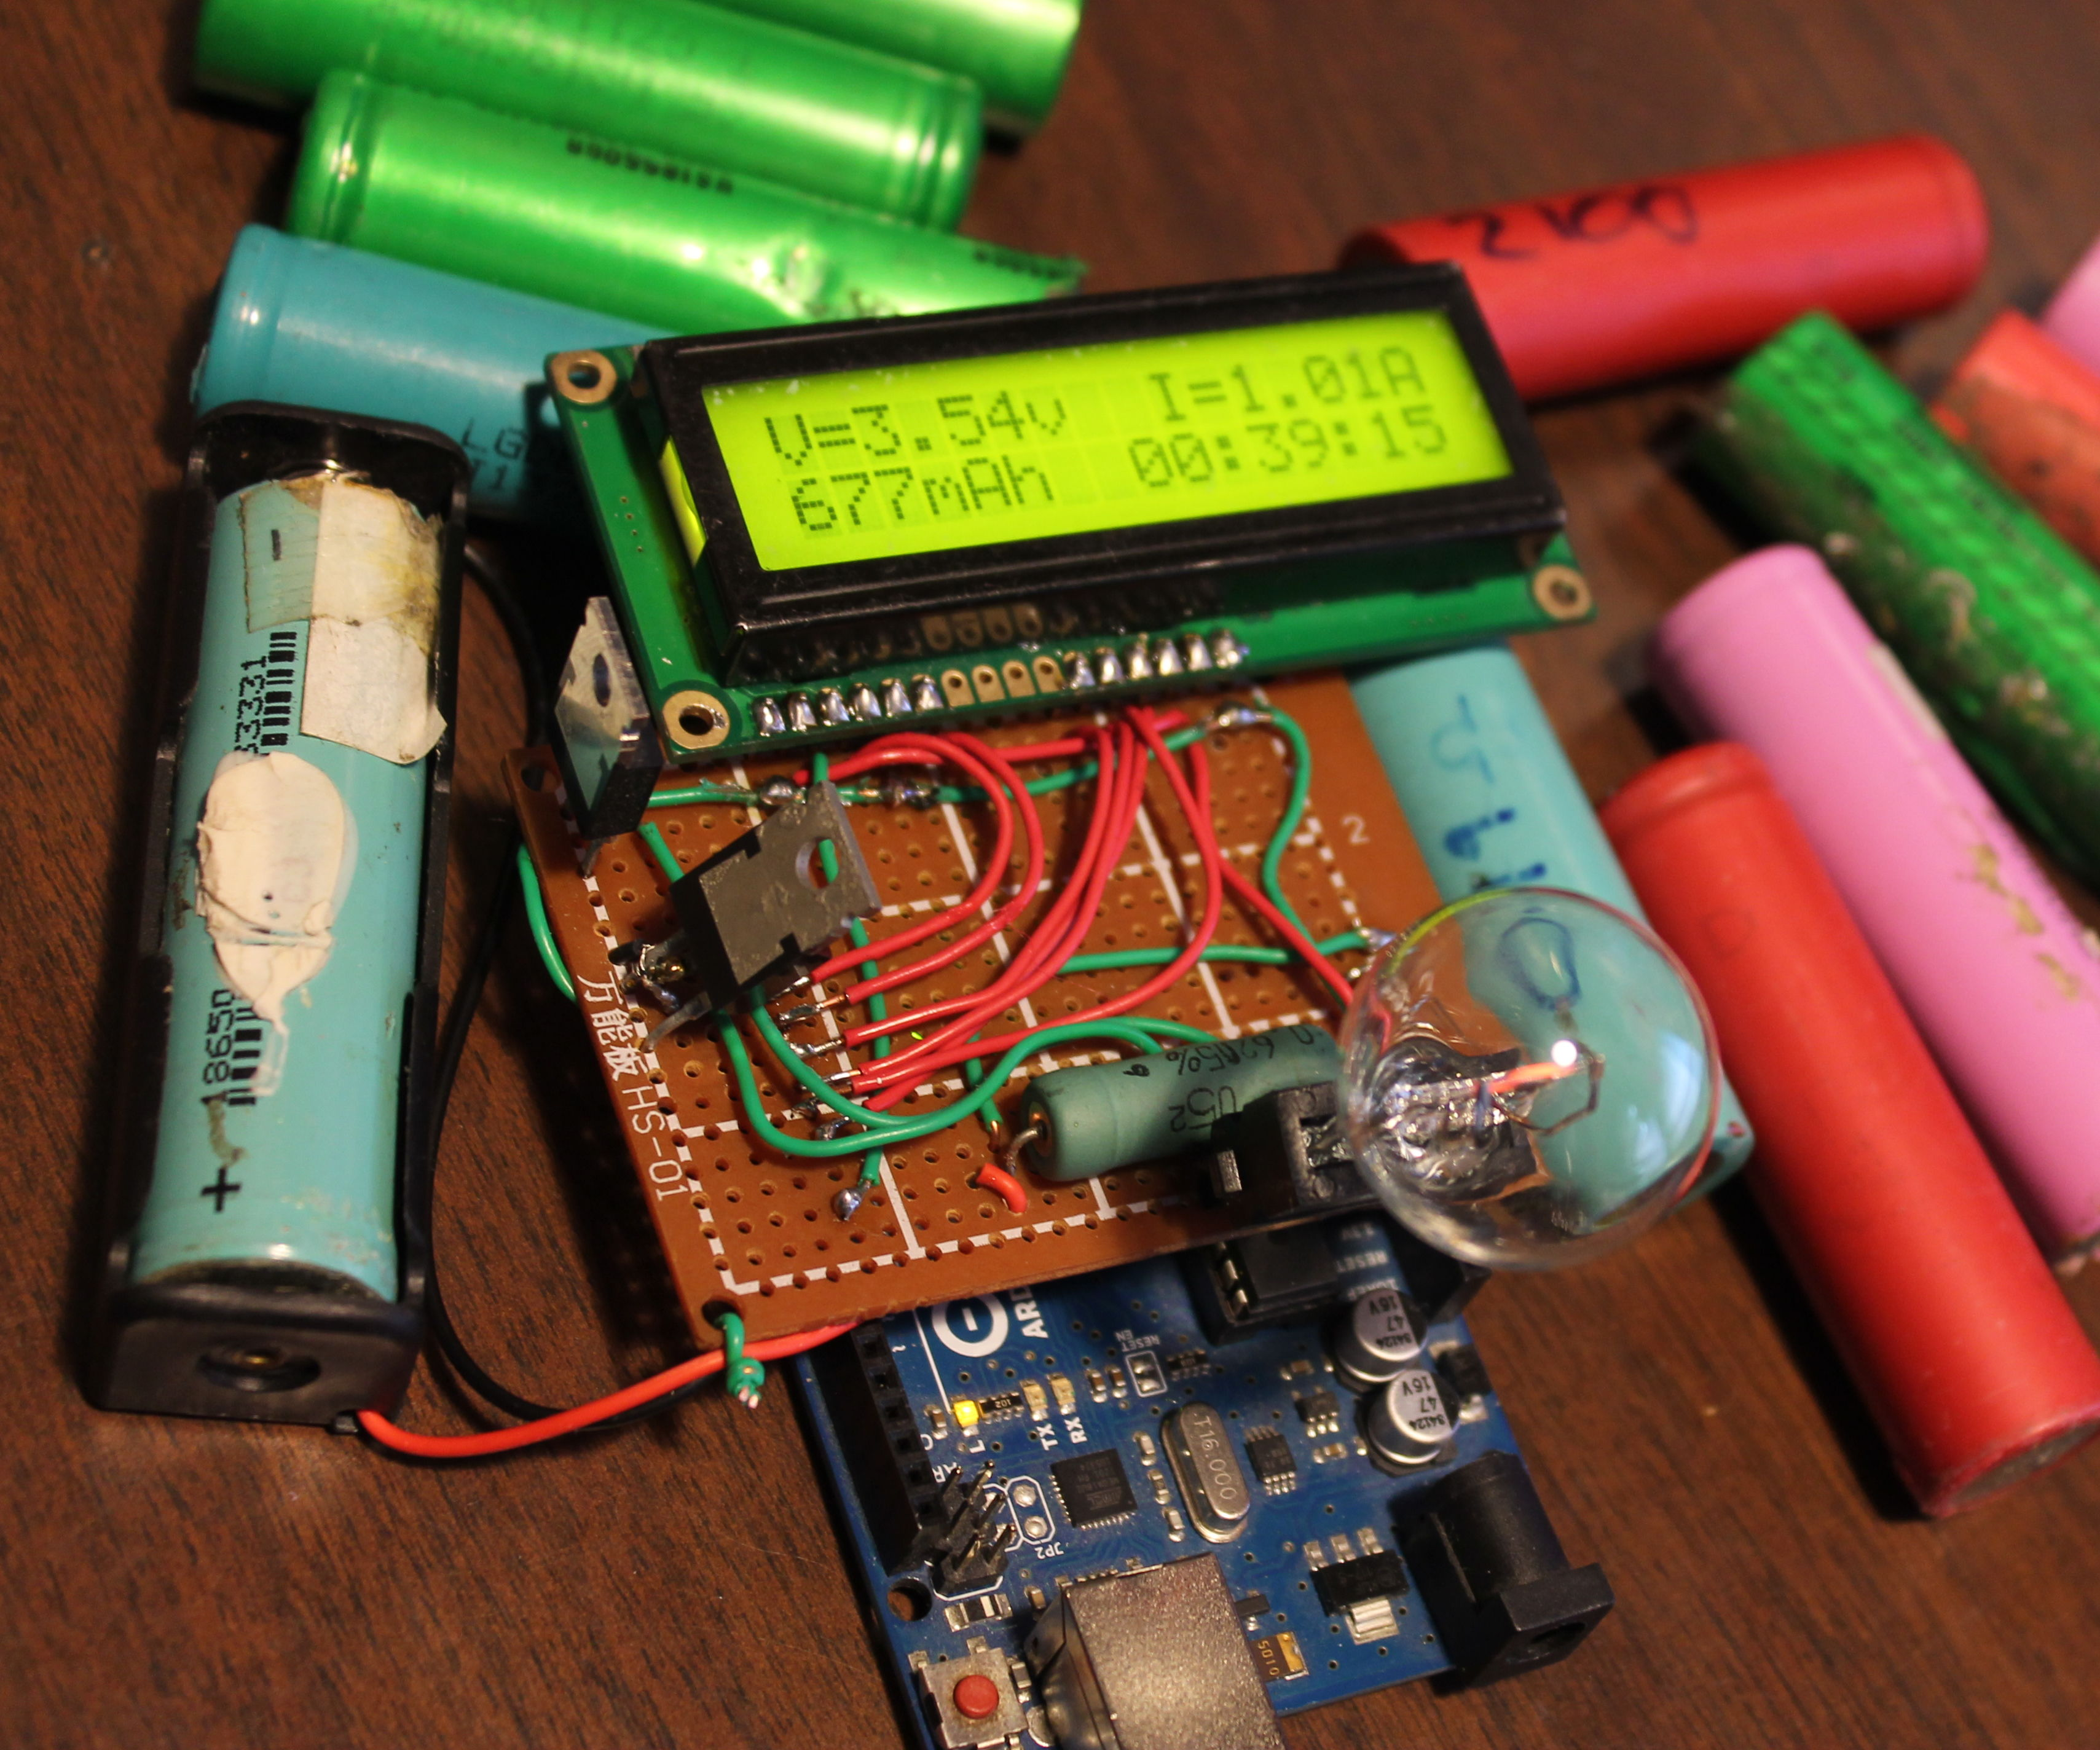 Reboot: Measure Li-ion cell capacity with an arduino